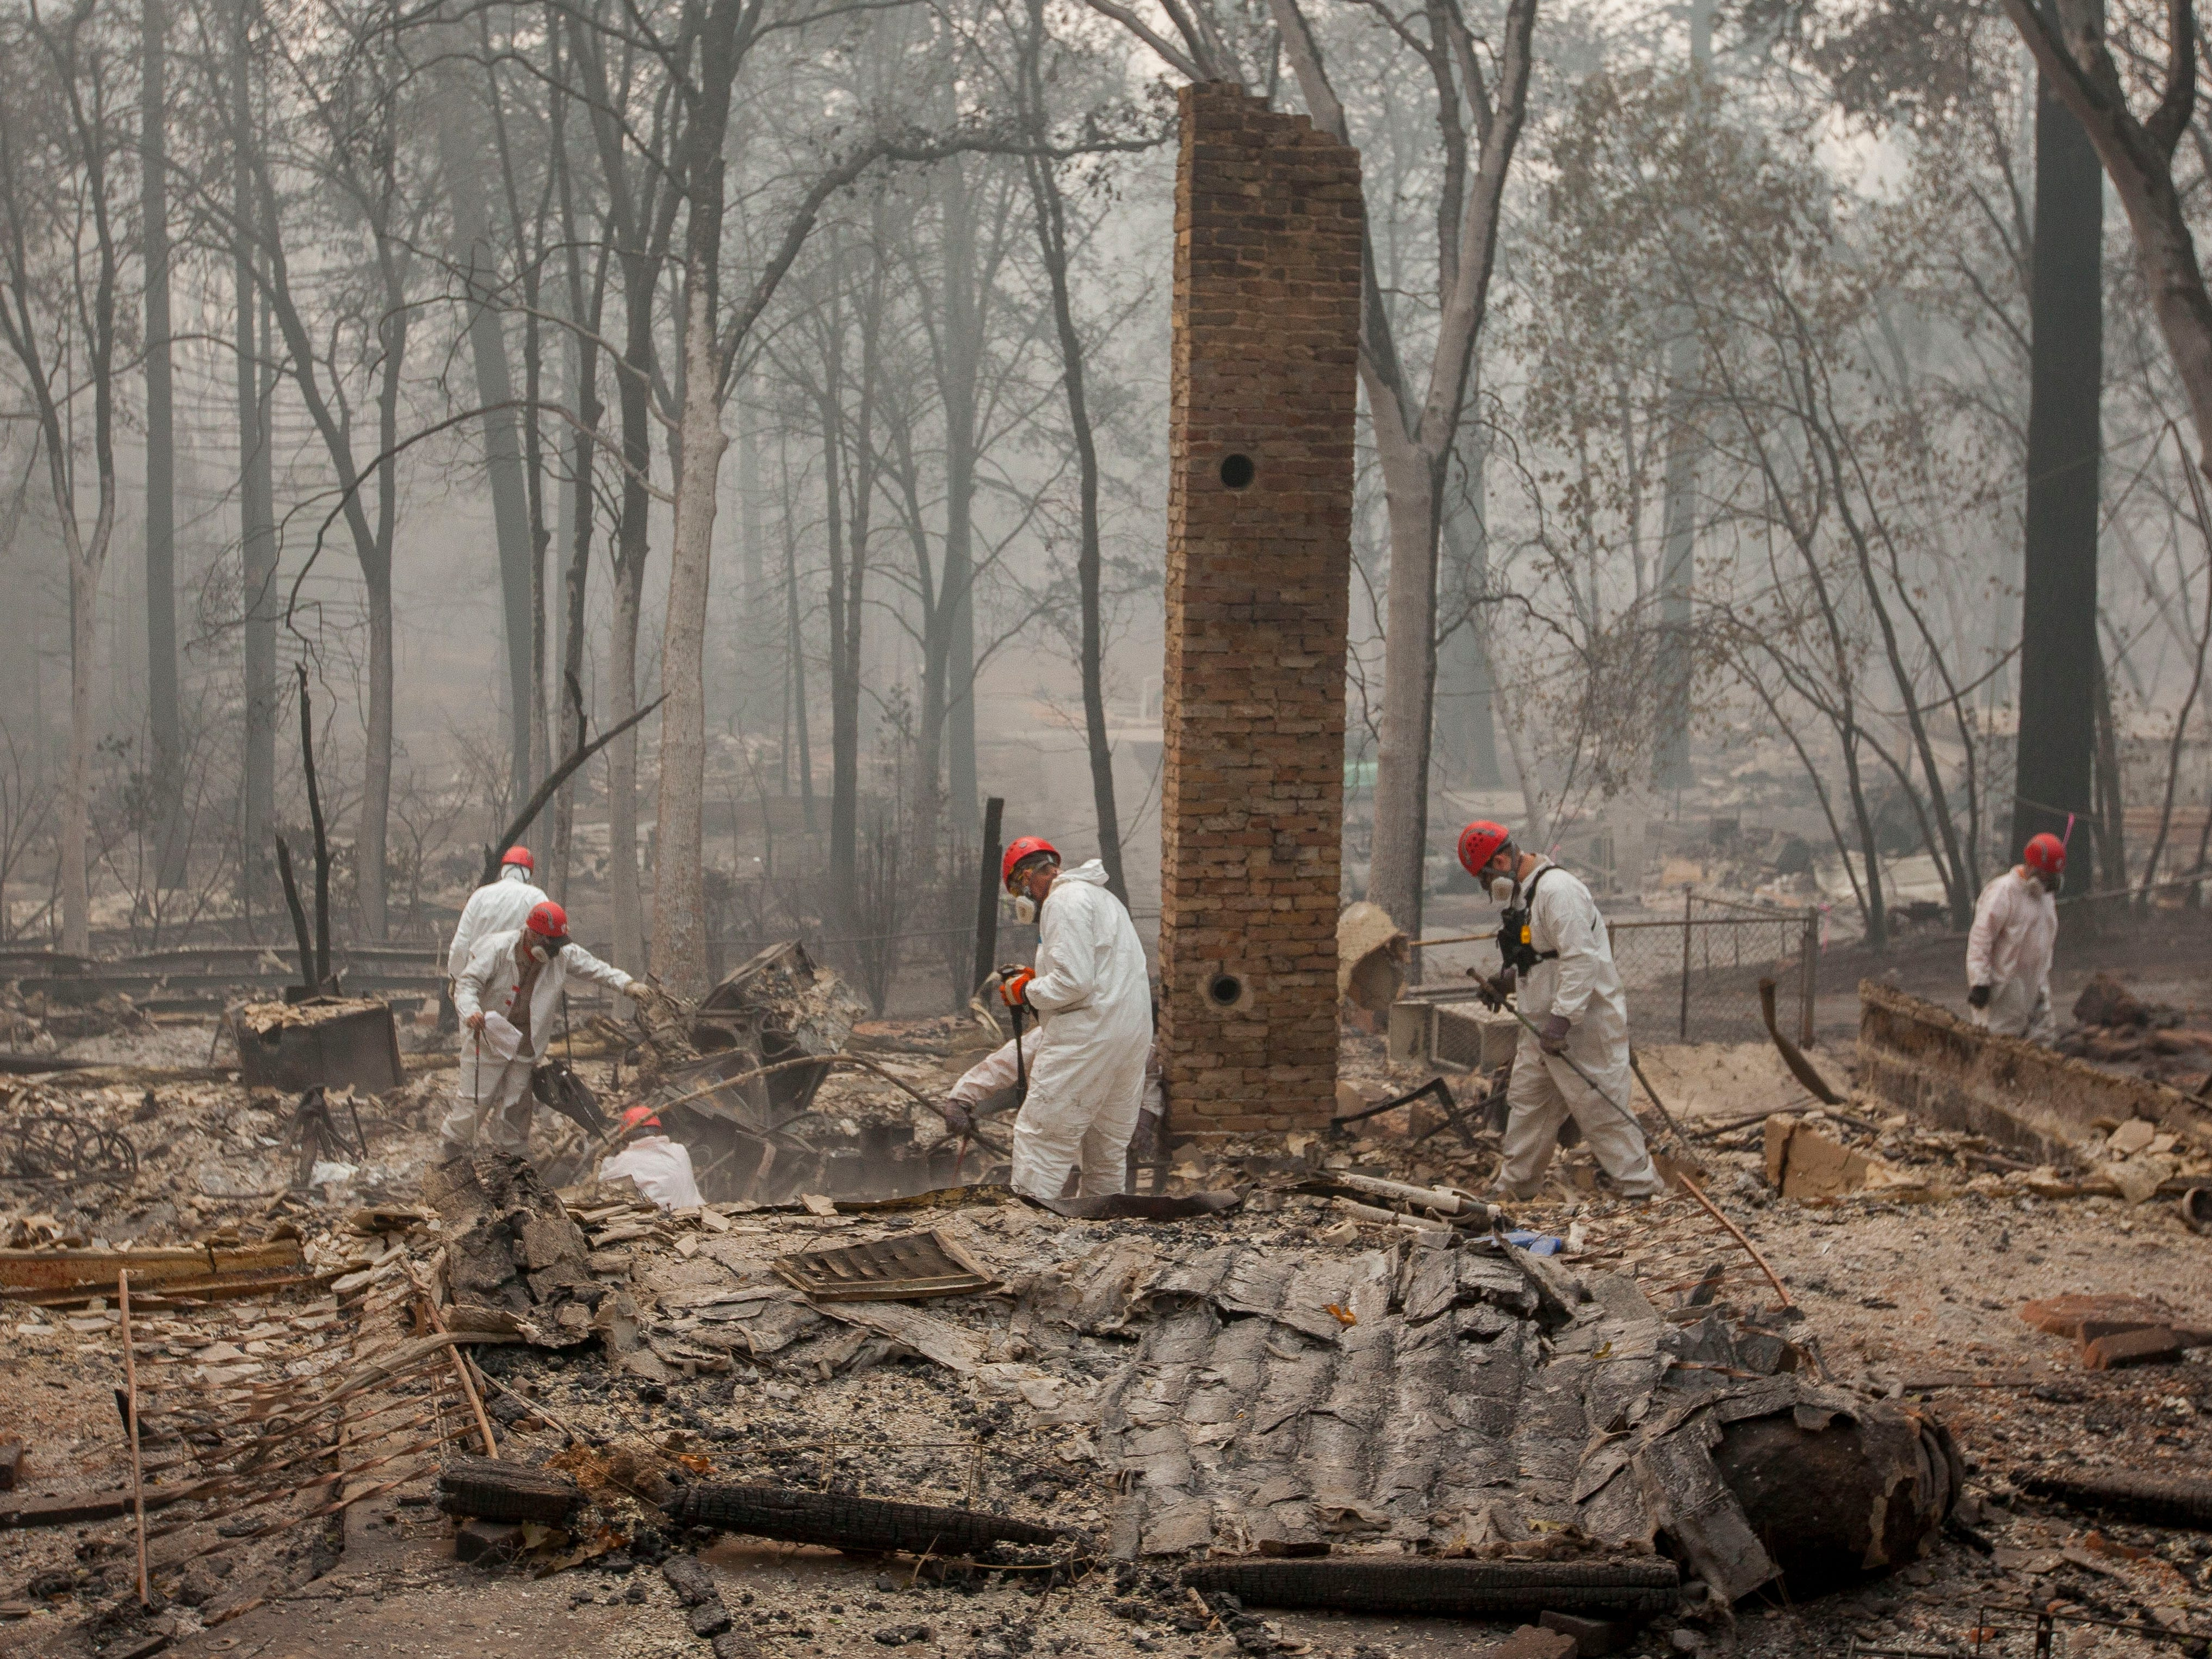 Search and rescue personnel comb through debris searching for remains in a neighborhood near Pentz Road in Paradise, Calif, after the Camp Fire devastated the area, Nov. 15, 2018.